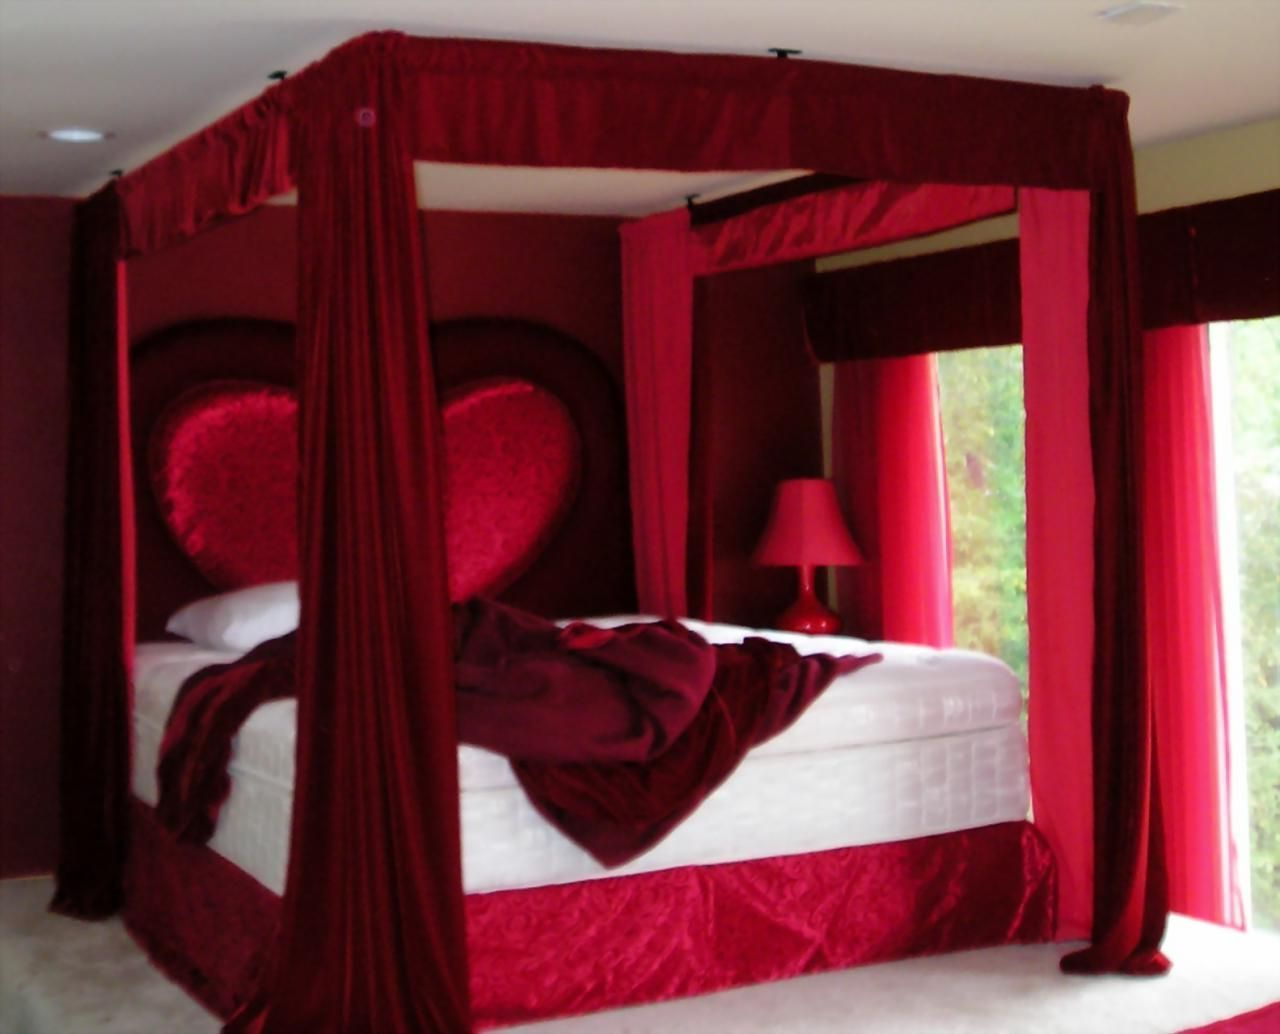 bedroom powerful bedroom design ideas in red color choices lovable bedroom idea for romantic - Bedroom Ideas For Couples